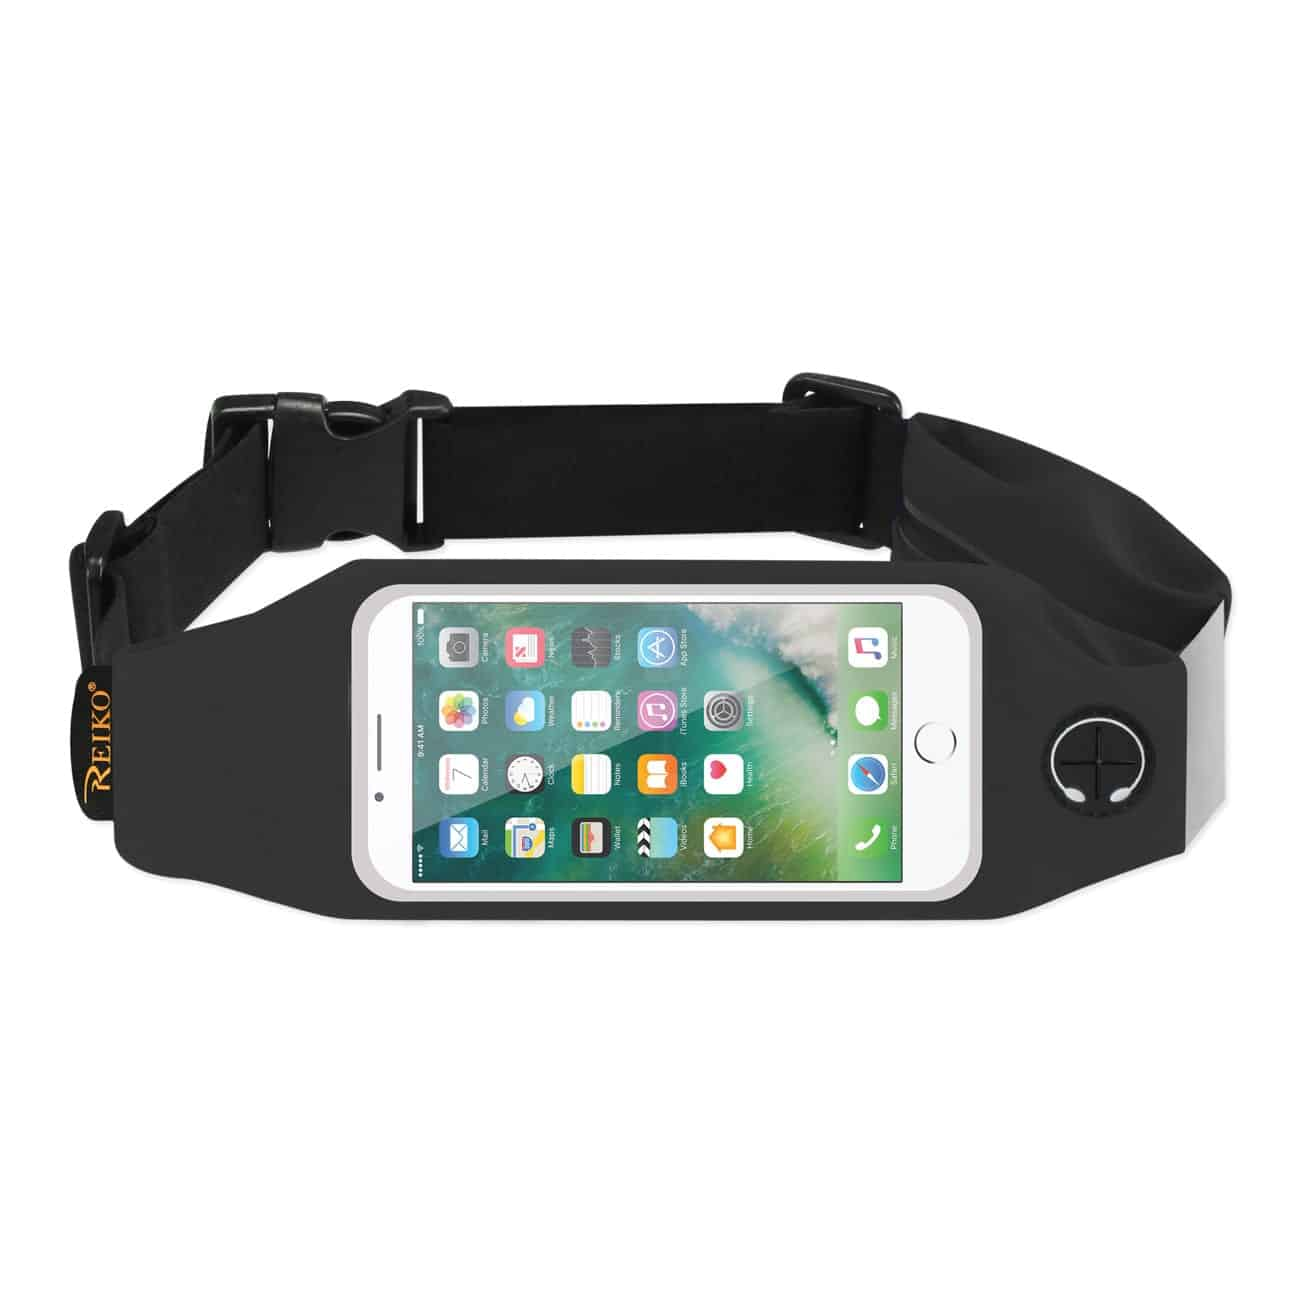 RUNNING SPORT BELT FOR IPHONE 7/ 6/ 6S OR 5 INCHES DEVICE WITH TWO POCKETS IN BLACK (5x5 INCHES)